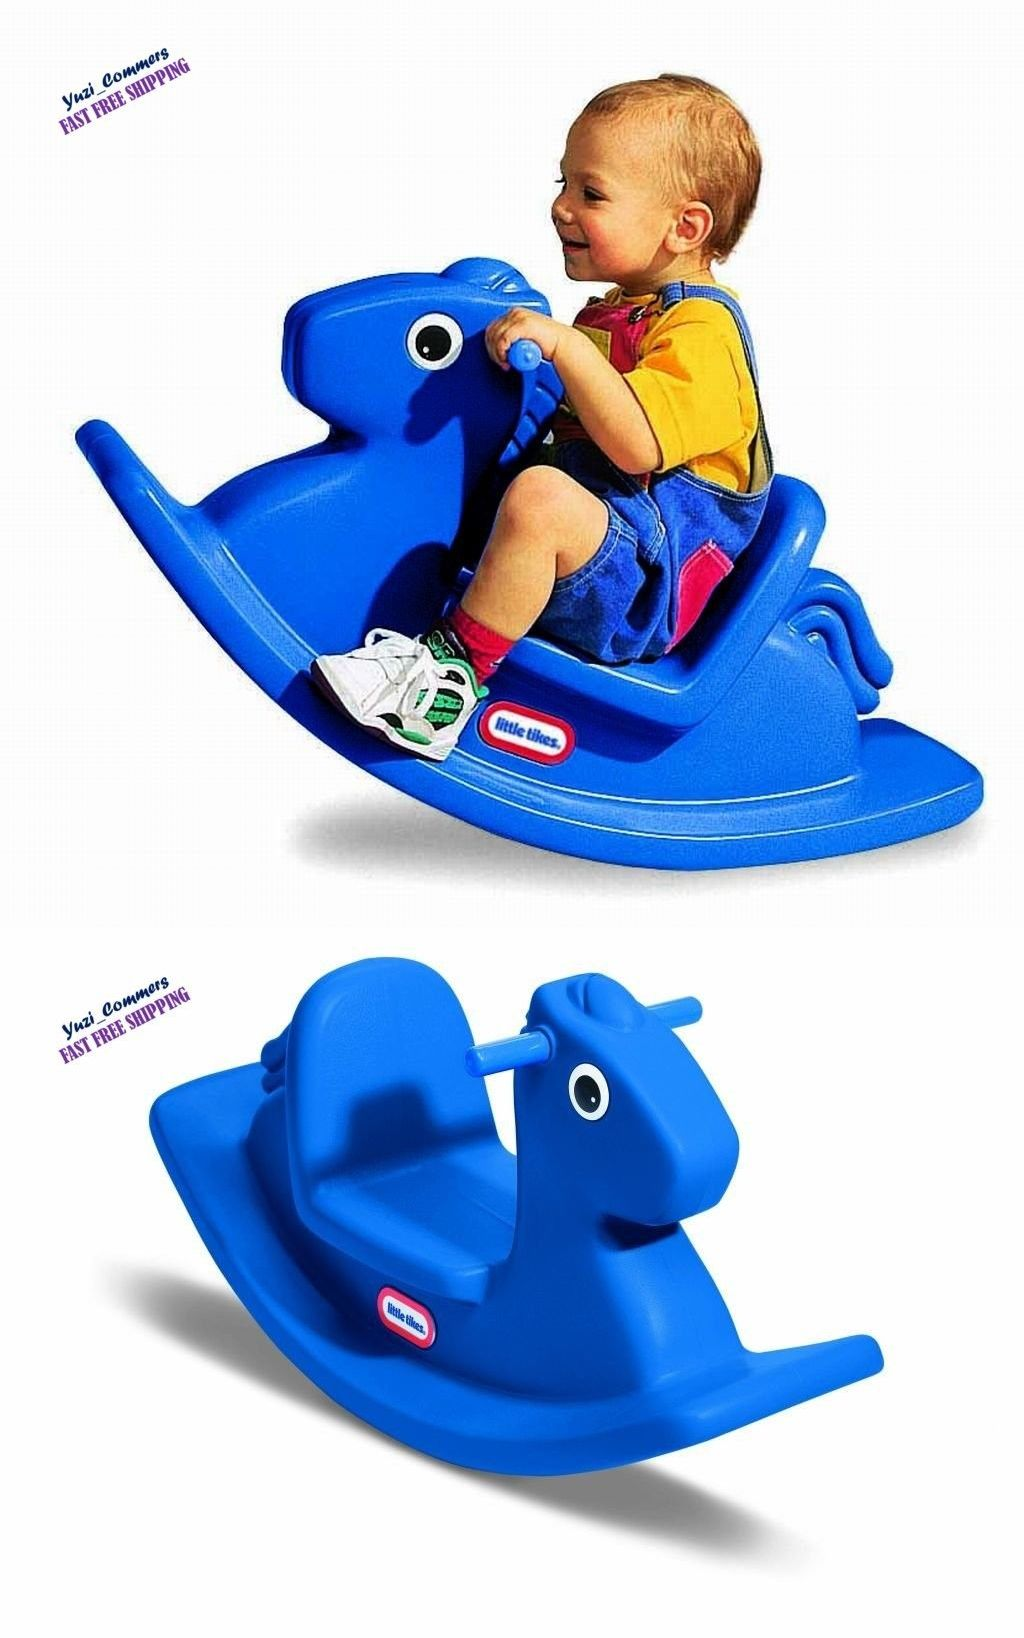 Child Size 2574: Little Tikes Rocking Horse Children Toy Outdoor Backyard  Play Toy For Kids